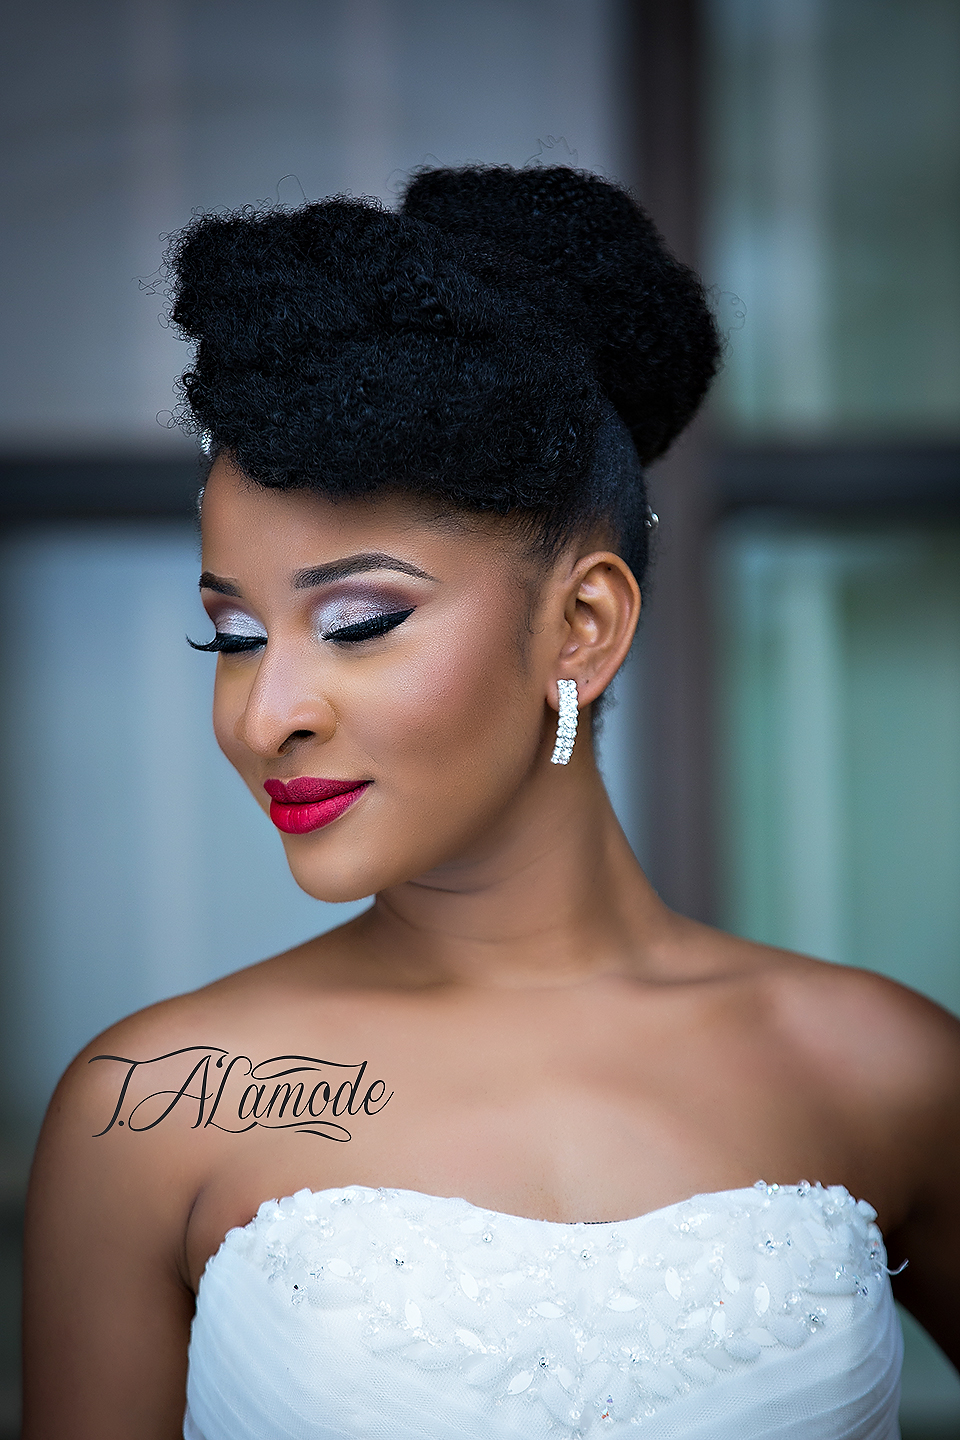 Striking Natural Hair Looks For The 2015 Bride T Alamode